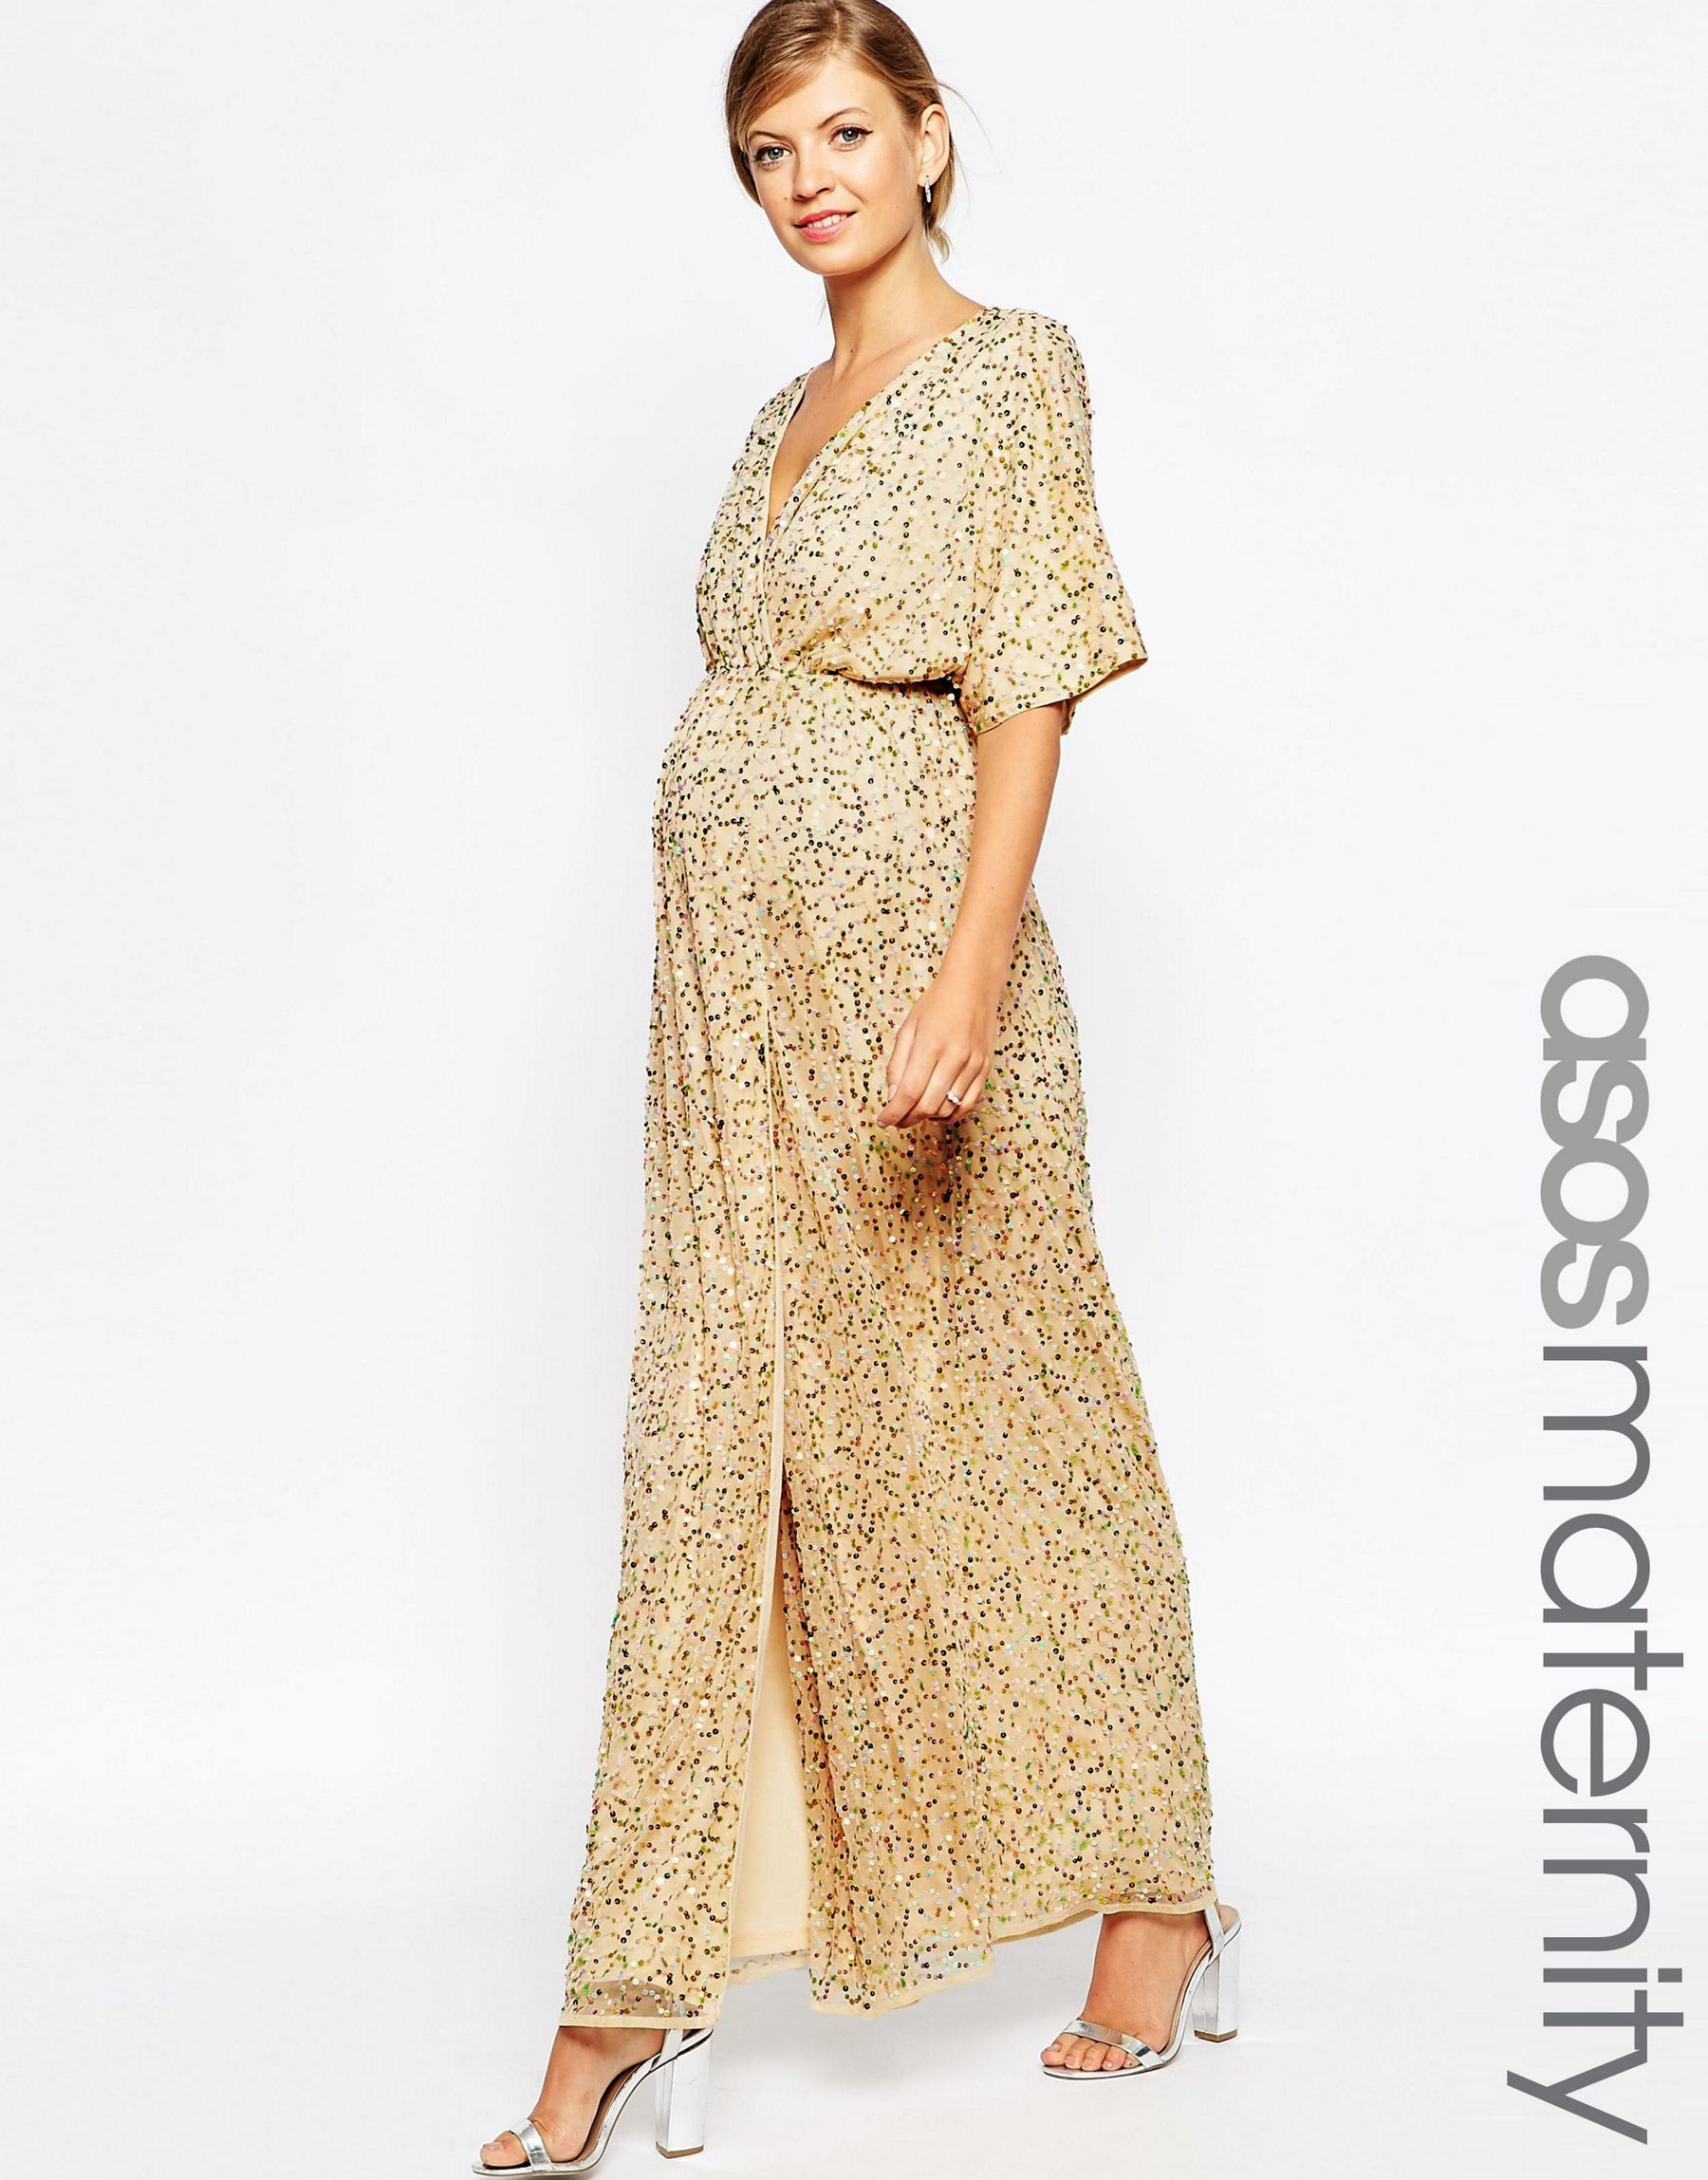 Discover maternity dresses on sale for women at ASOS. Shop the latest collection of maternity dresses for women on sale.